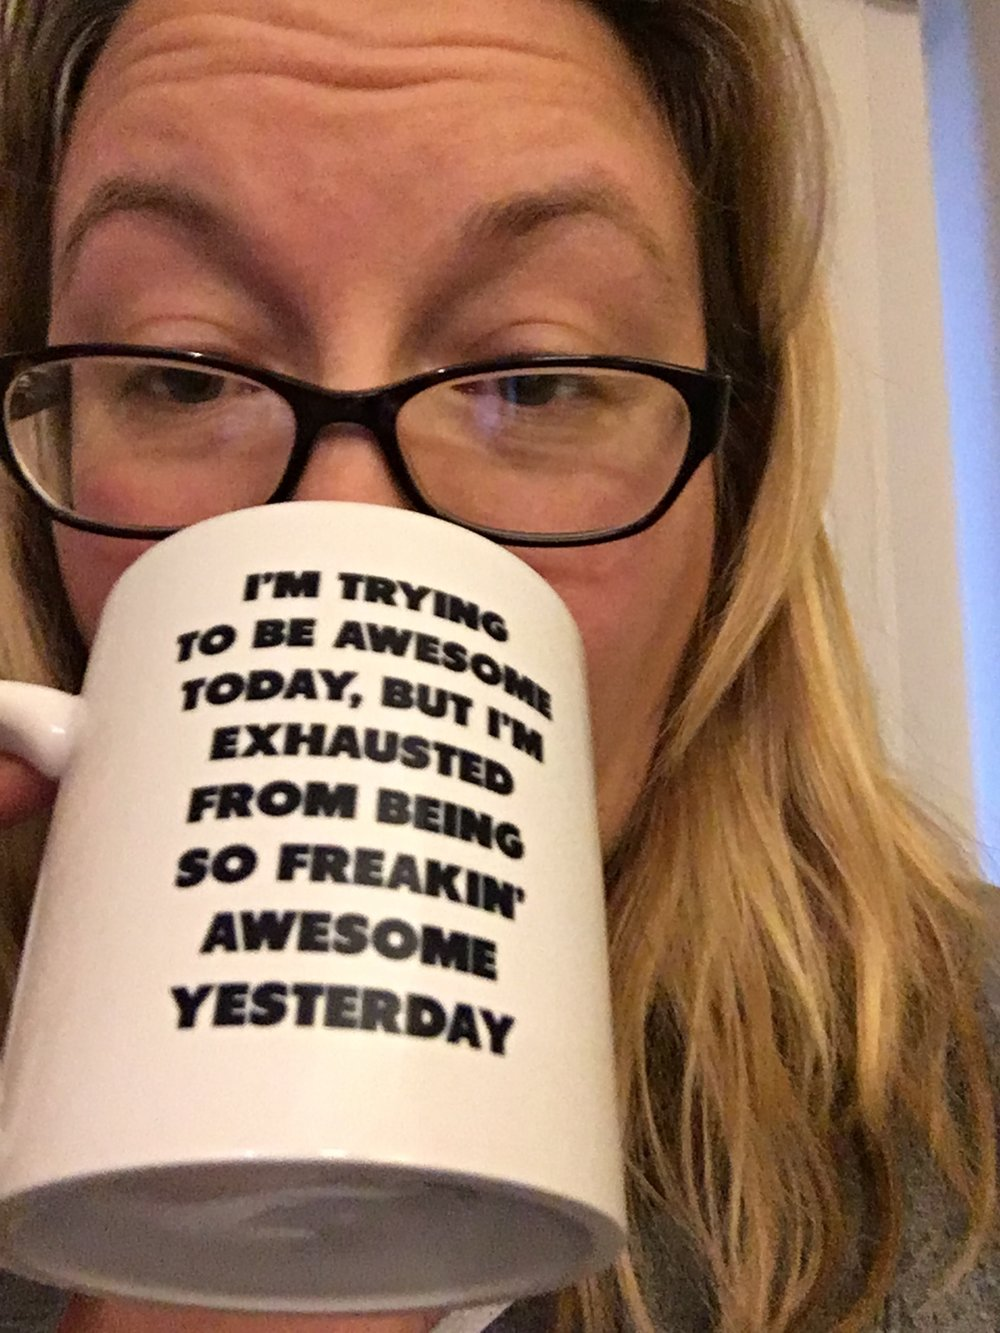 The mug speaks truth.